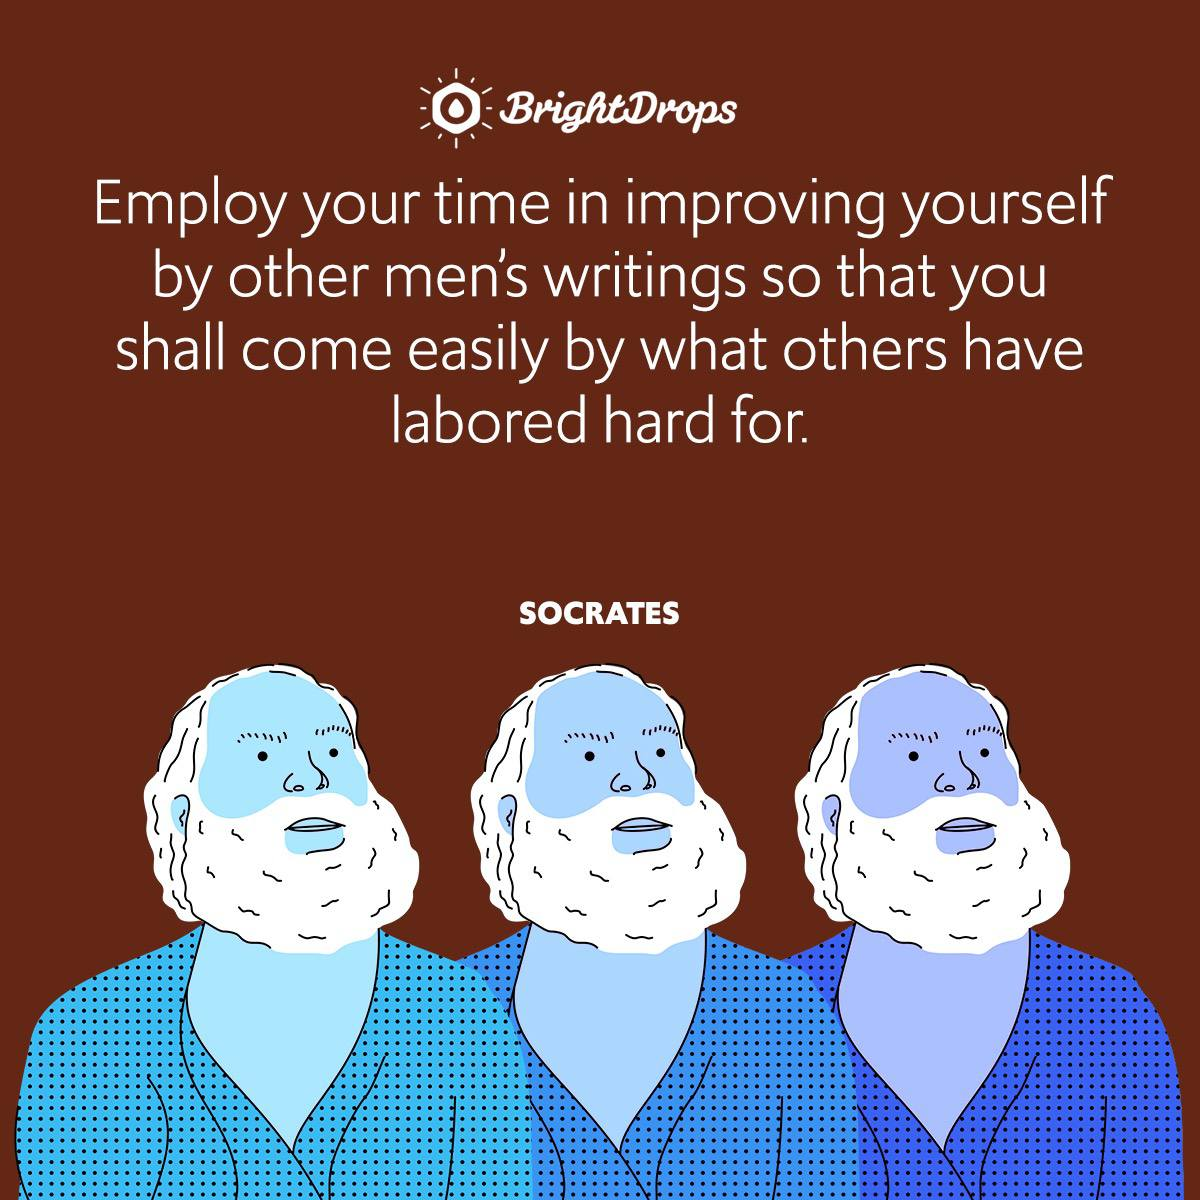 Employ your time in improving yourself by other men's writings so that you shall come easily by what others have labored hard for.